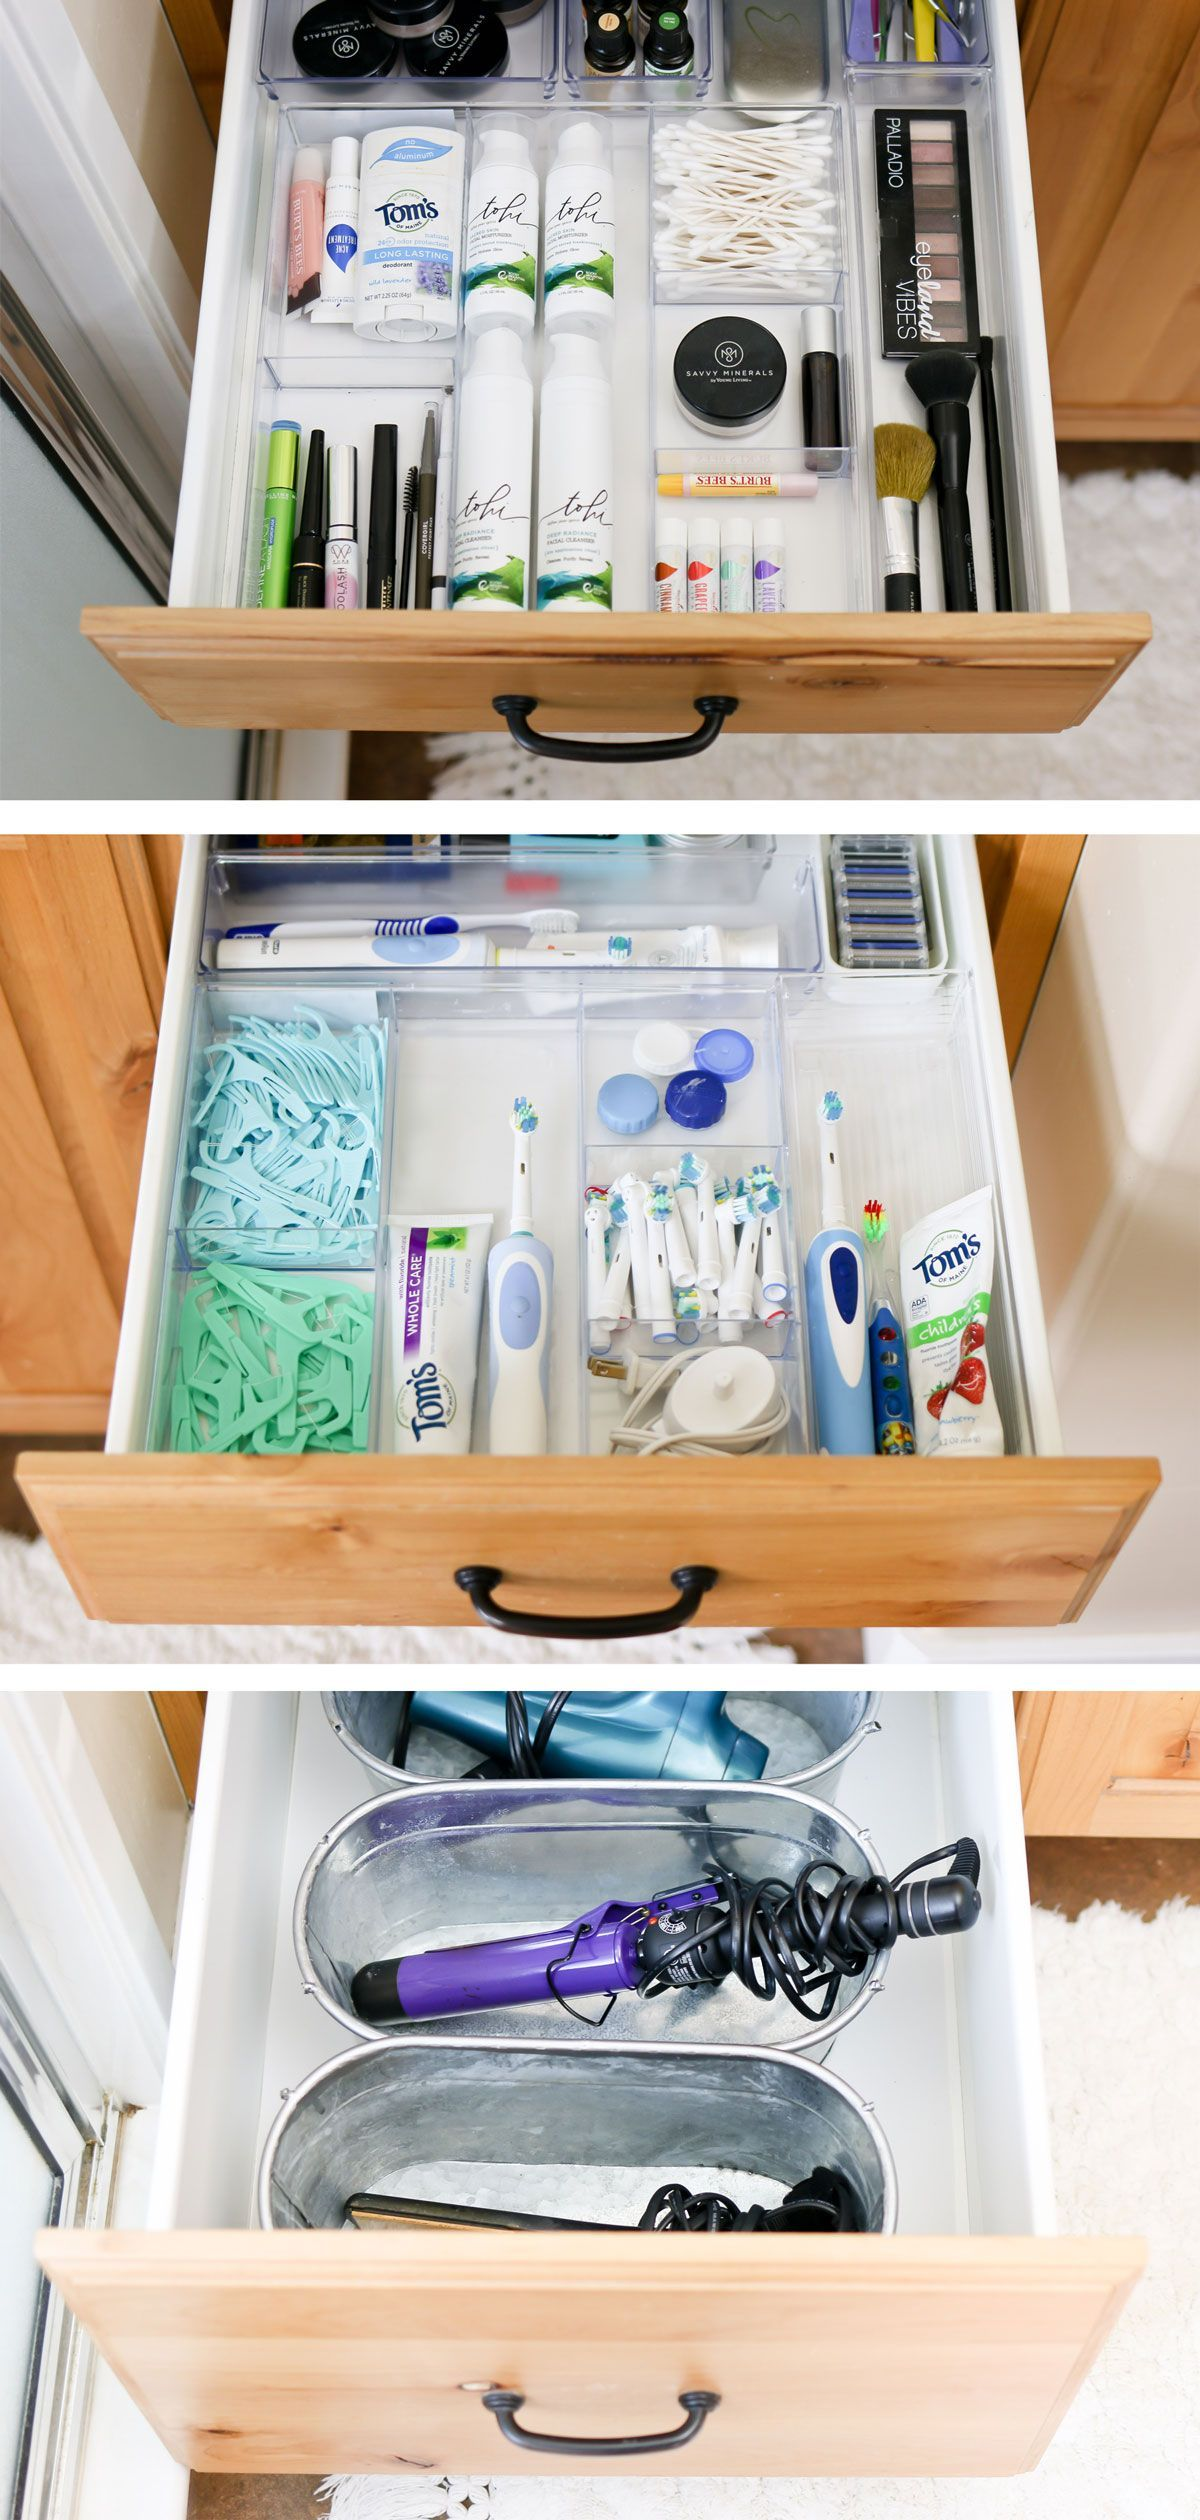 Supplies, tips and ideas for organizing bathroom drawers and cupboards. #bathroom #bathroomorganization #organization #organizing #organizingbathroom #homeorganization #camitidbits #tidbits #organizingsupplies